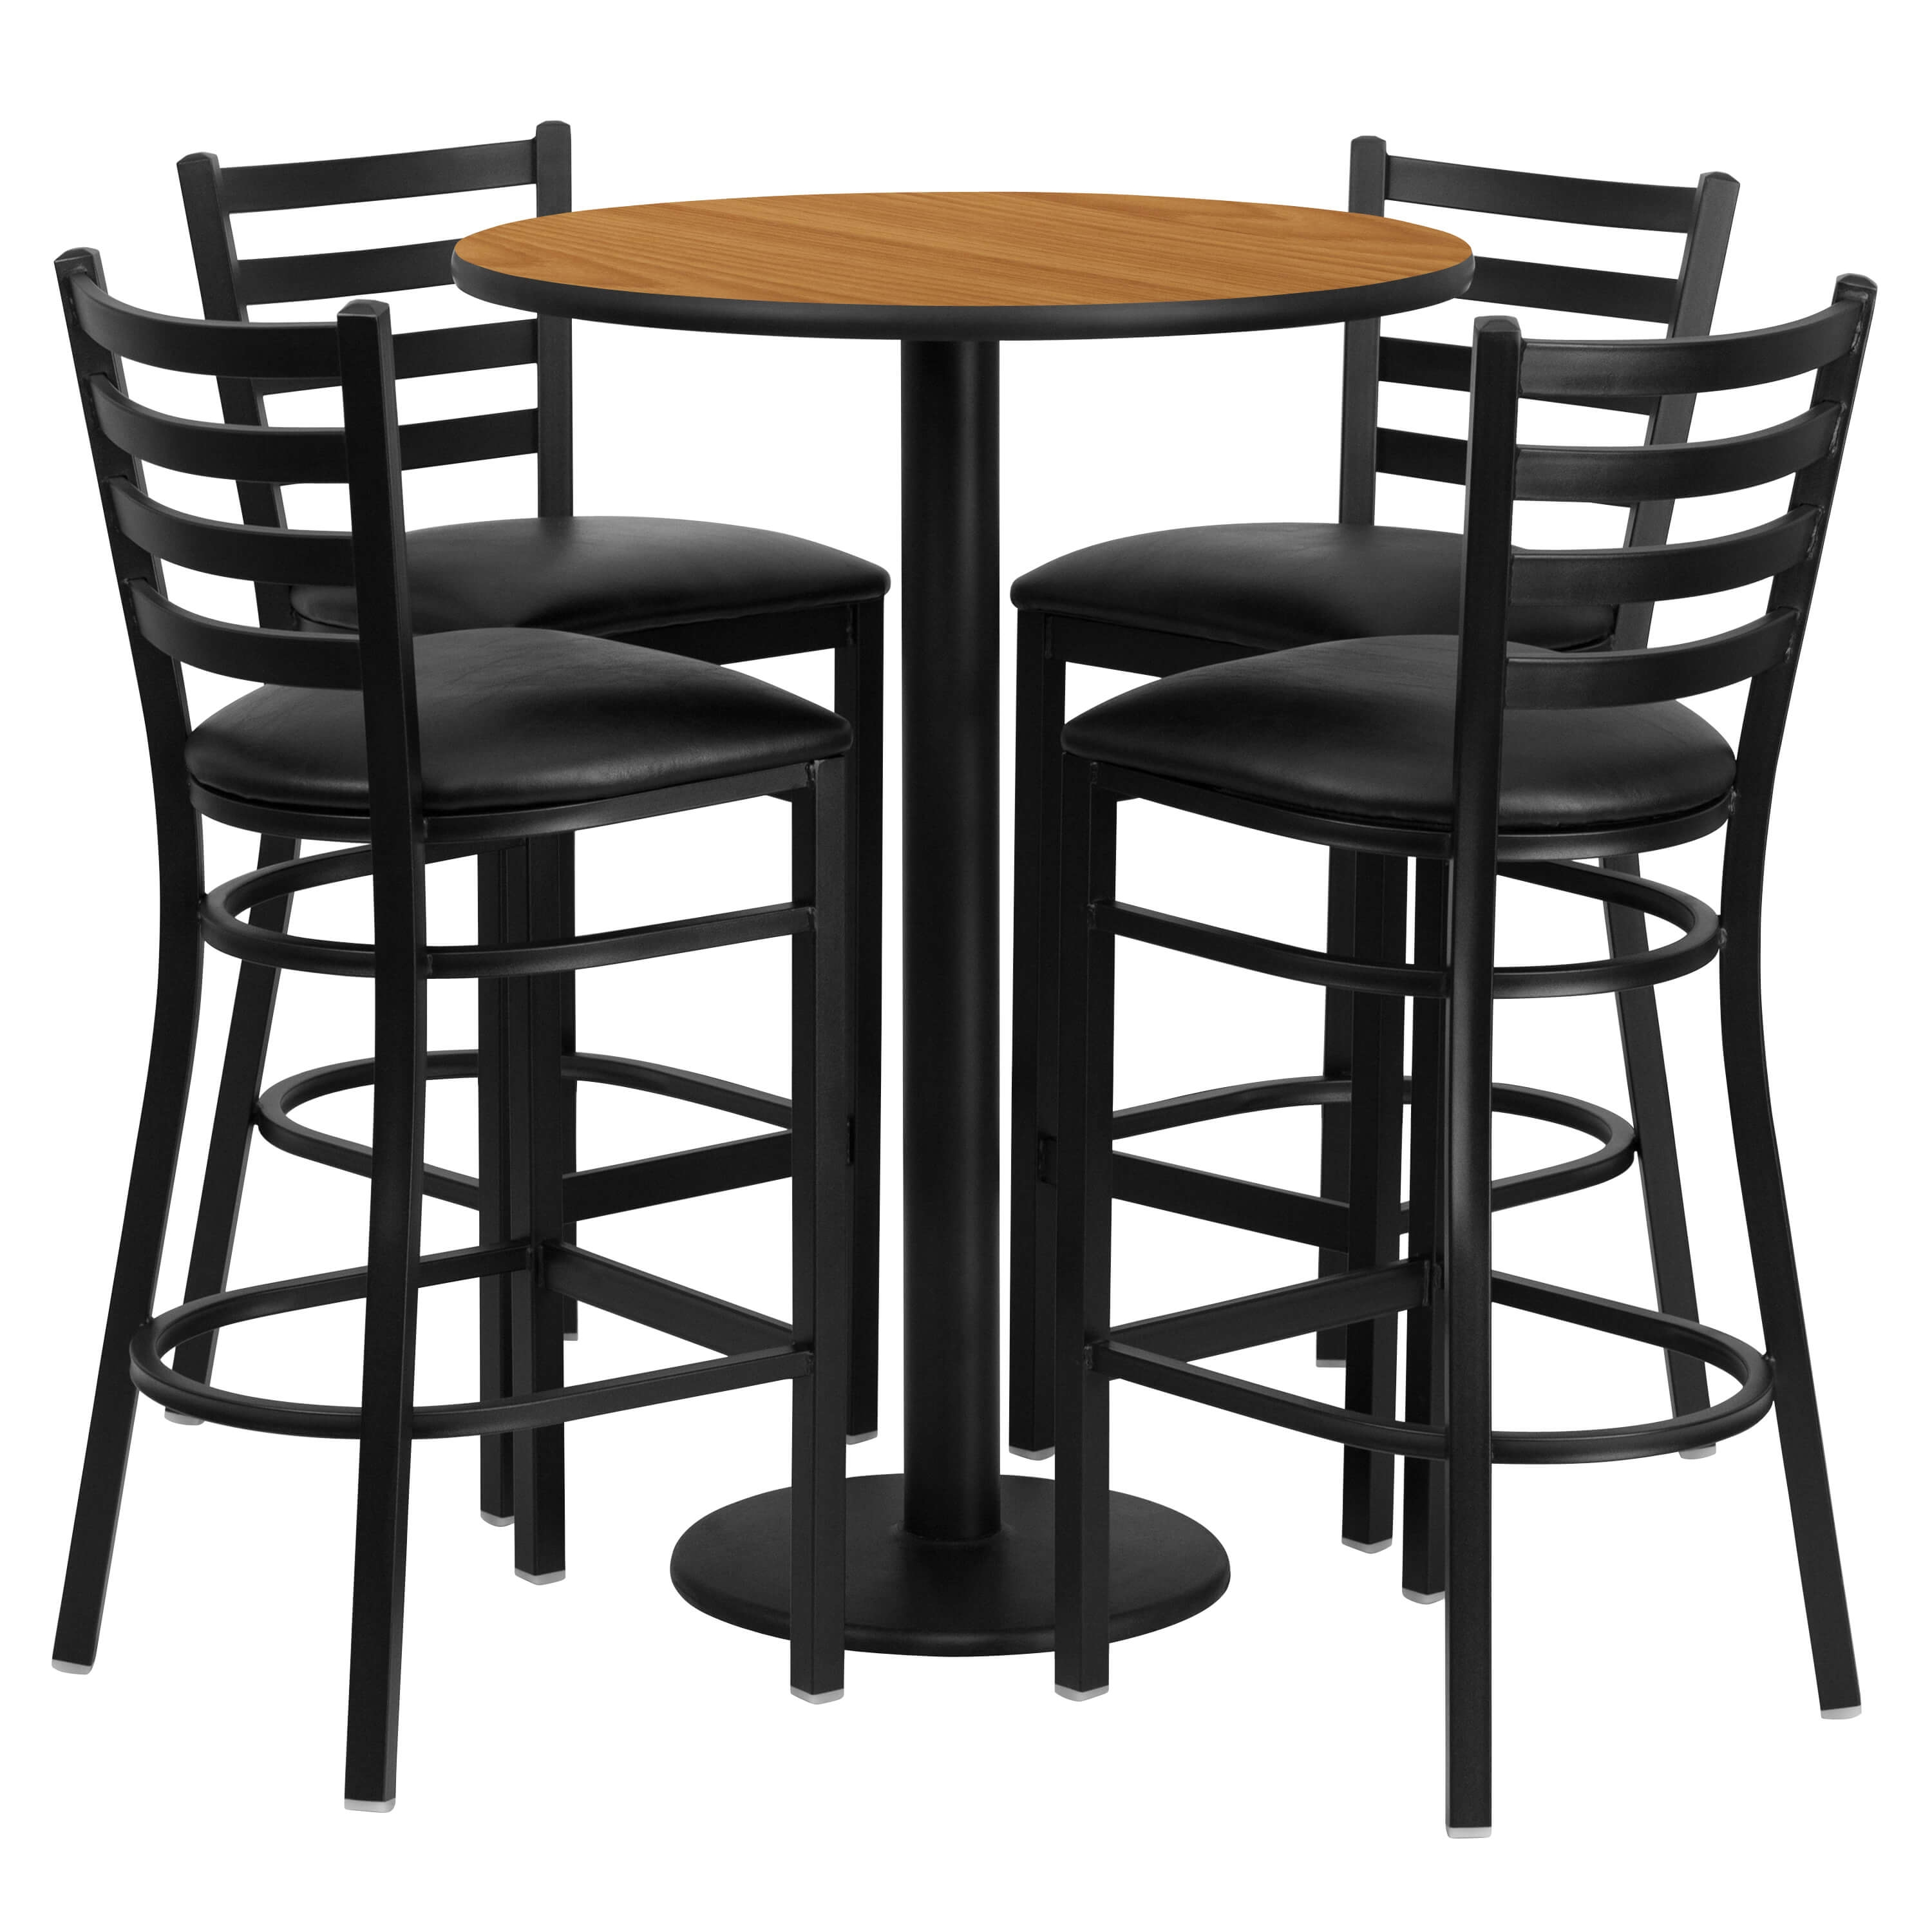 High top table set CUB RSRB1023 GG FLA